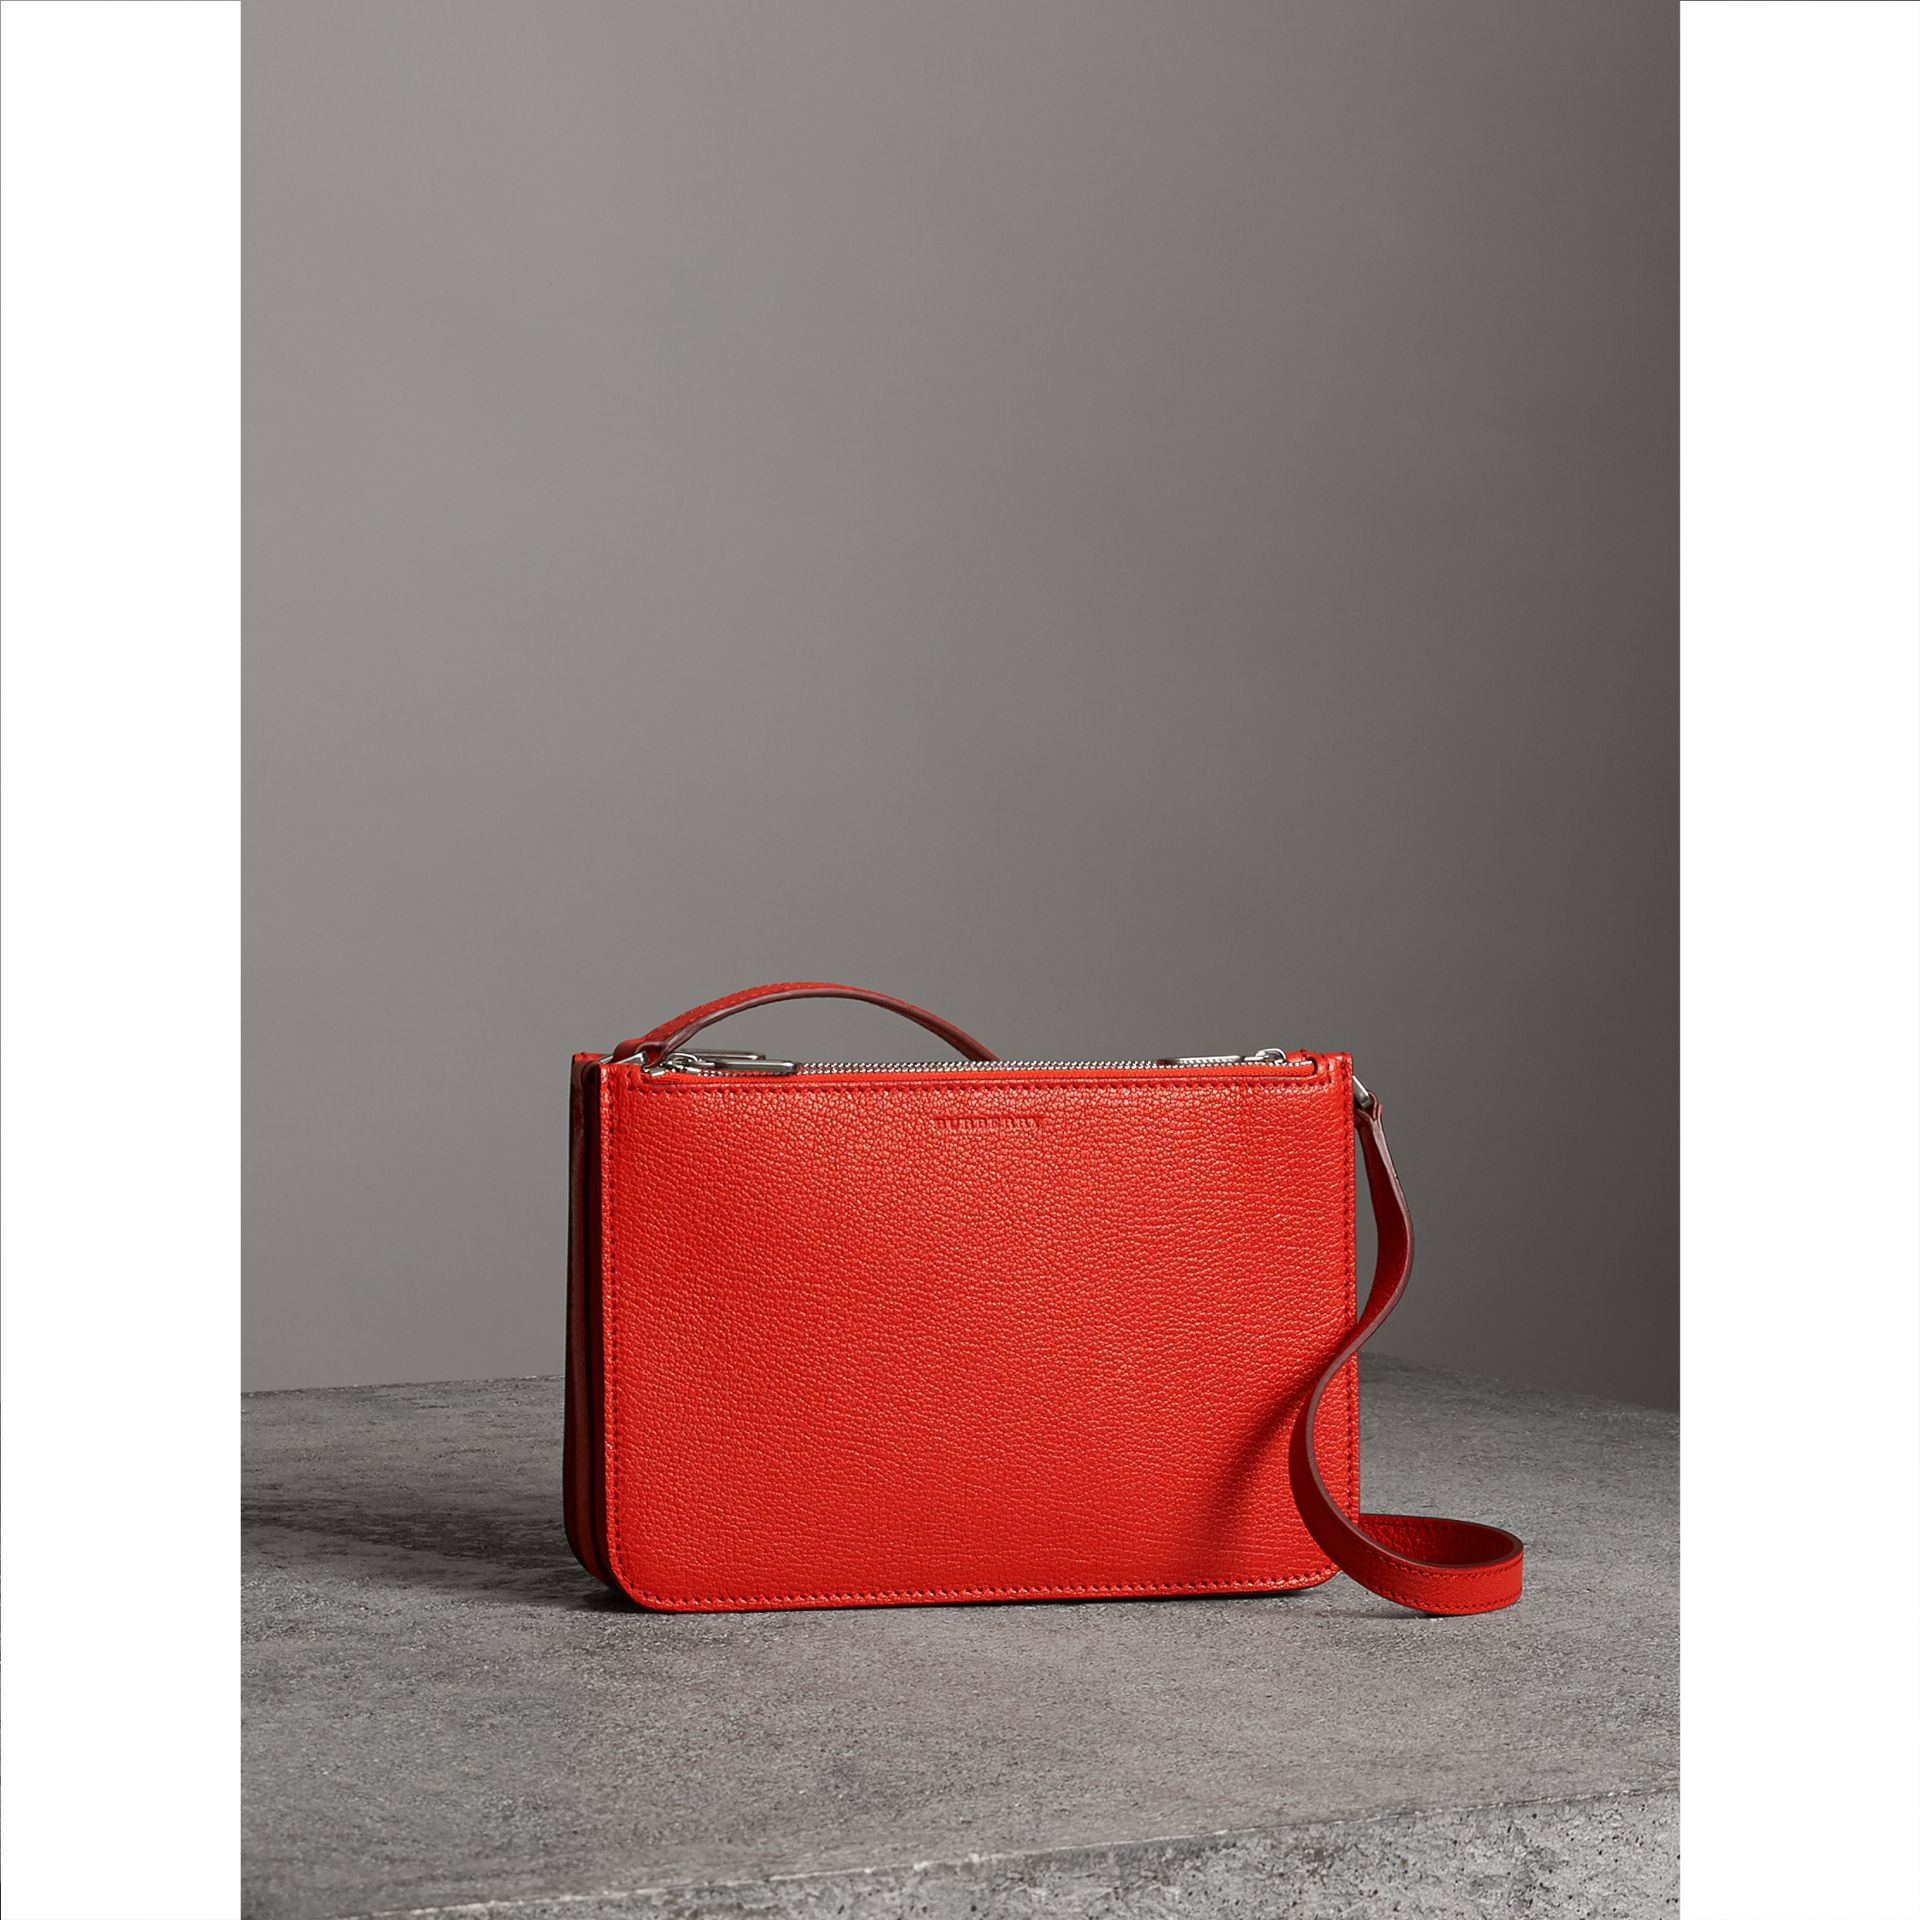 Triple Zip Grainy Leather Crossbody Bag in Bright Red - Women | Burberry United Kingdom - gallery image 6